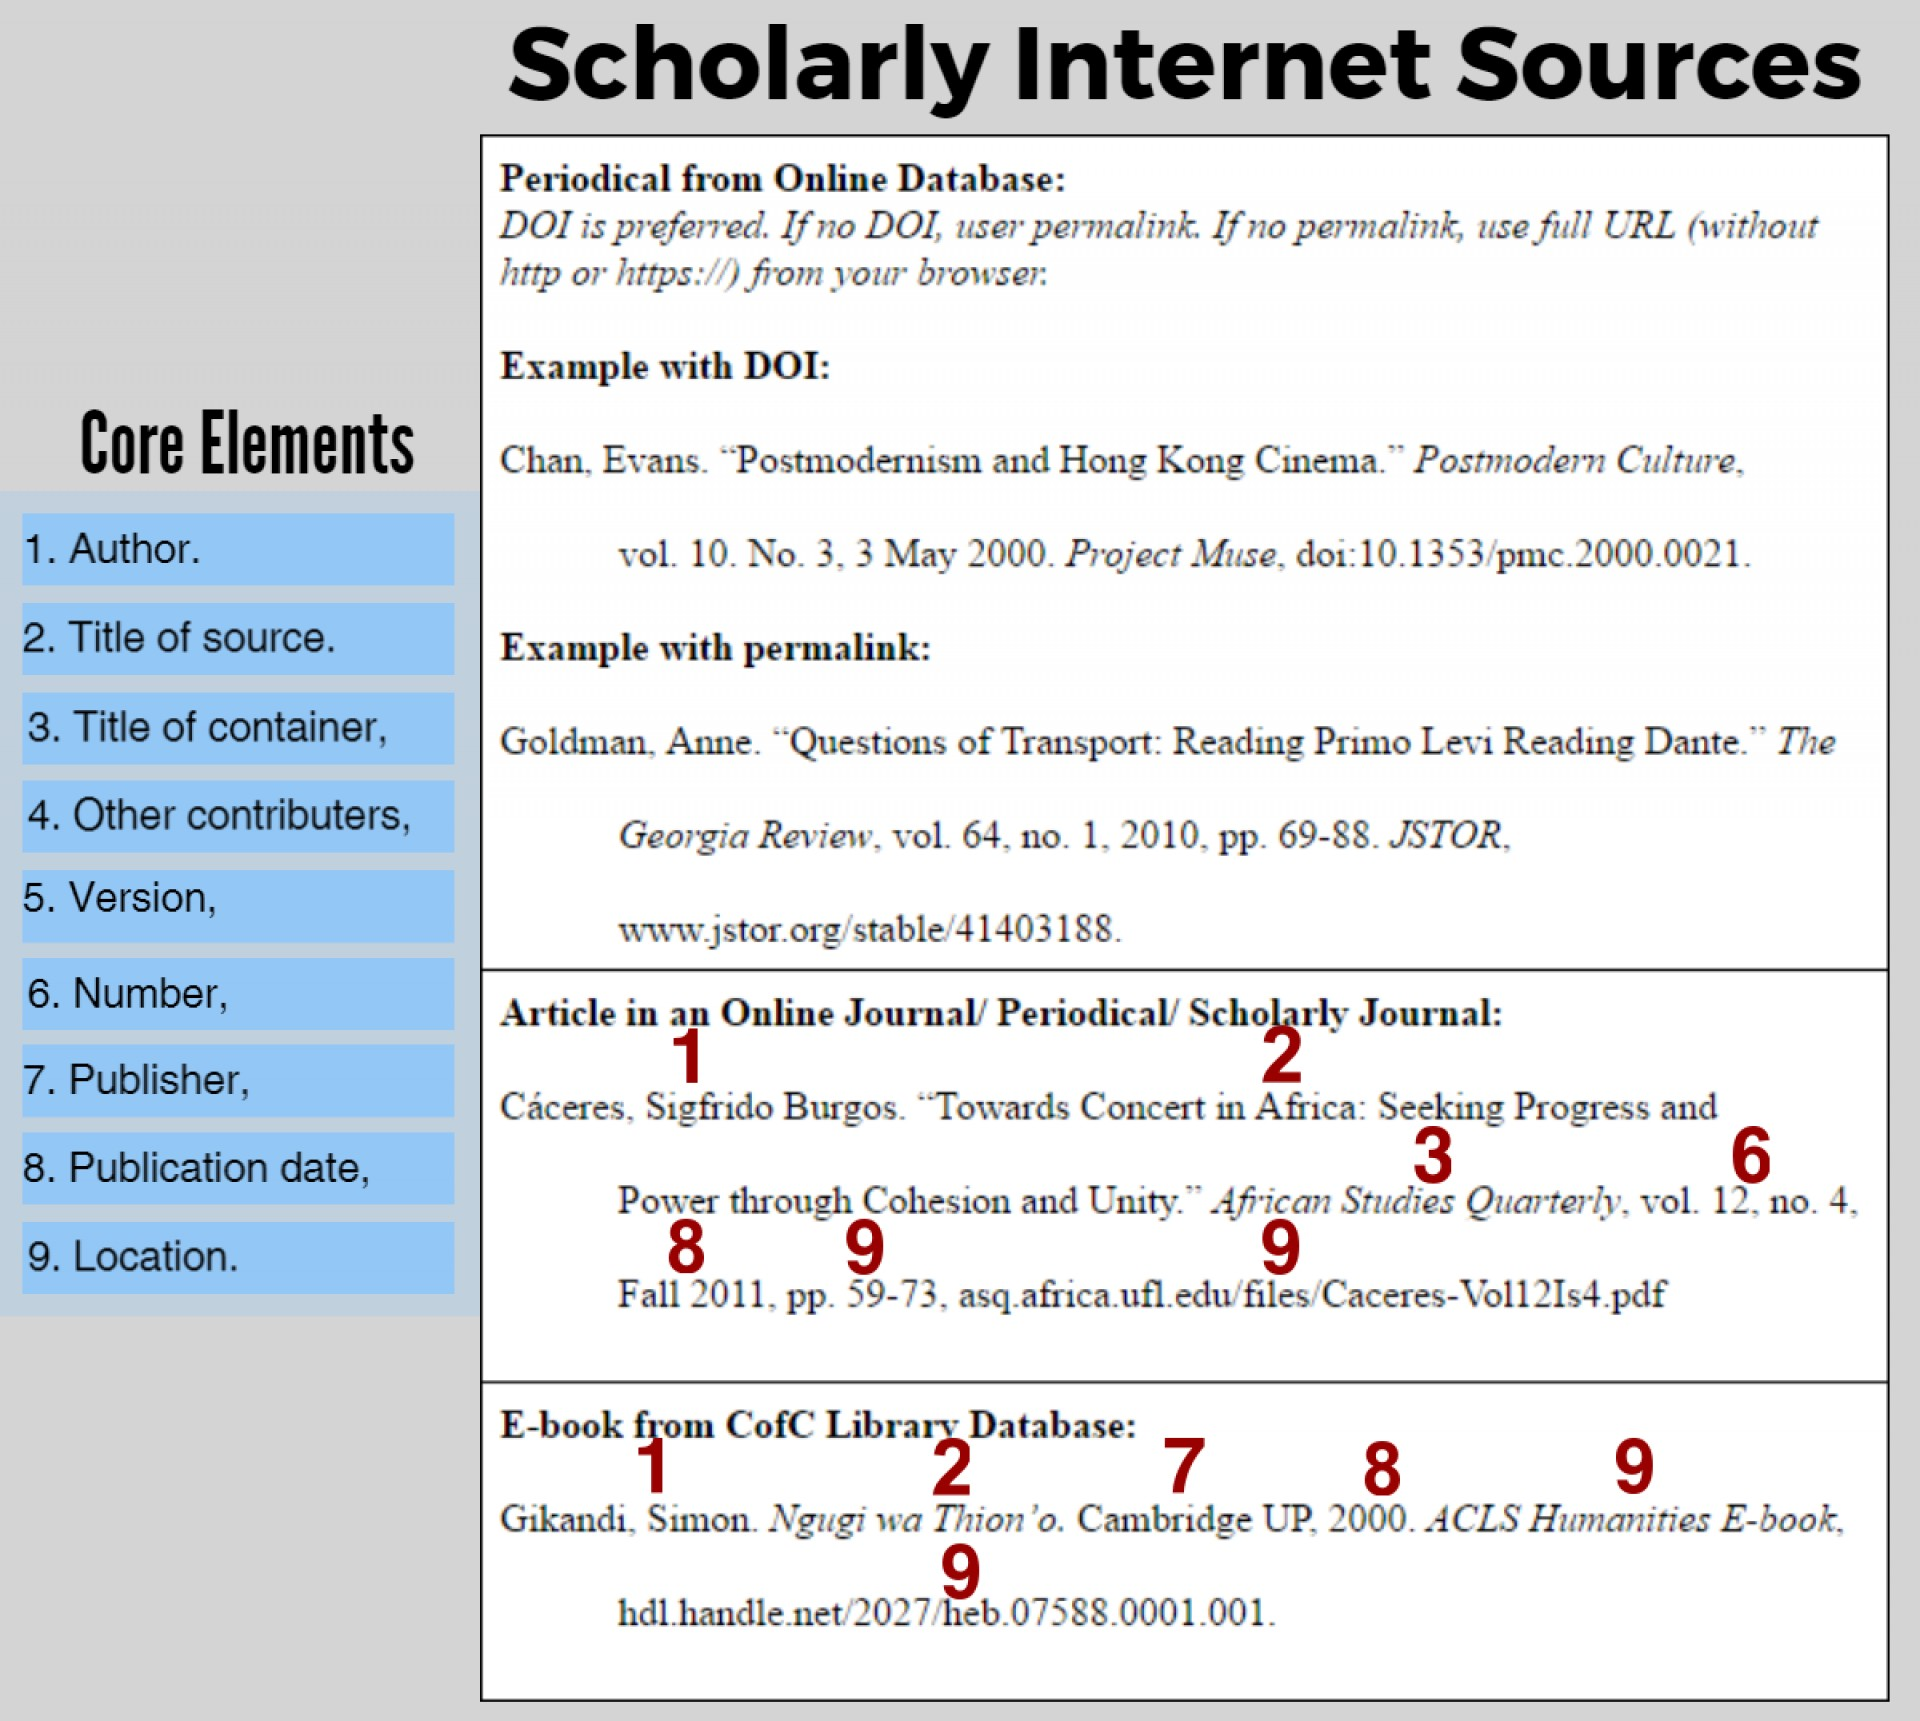 015 Research Paper Wc Scholarly In 20577291 A812ea293b38061822c80f851c865837549ab099 Mla Handbook For Writers Of Papers 8th Unique Edition Pdf Free Download 1920